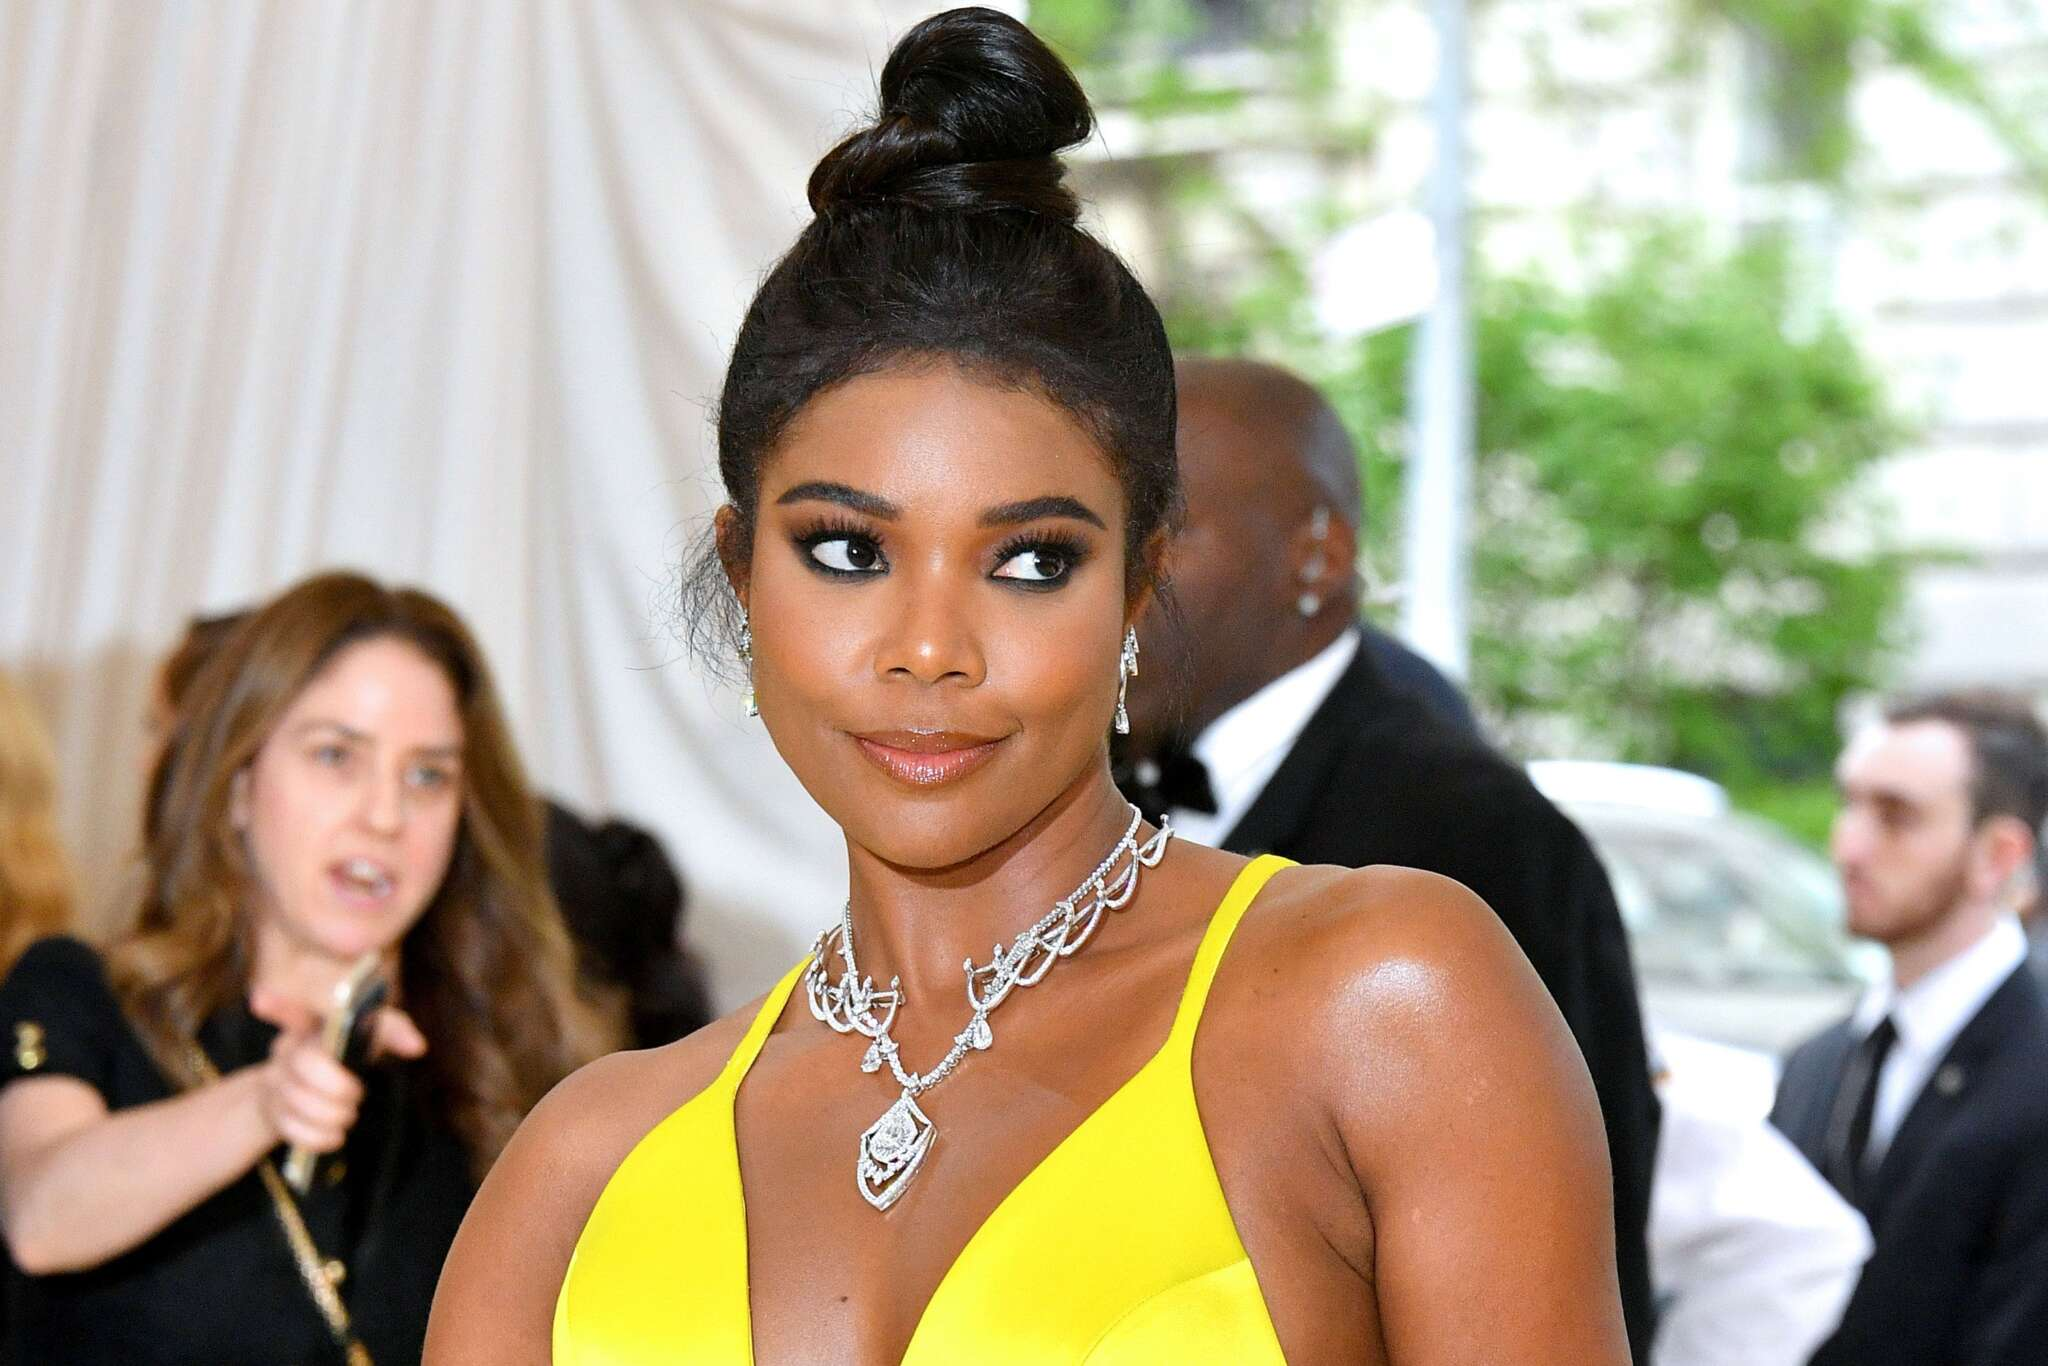 Gabrielle Union Makes Fans' Day With This Family Video That She Shared On Social Media